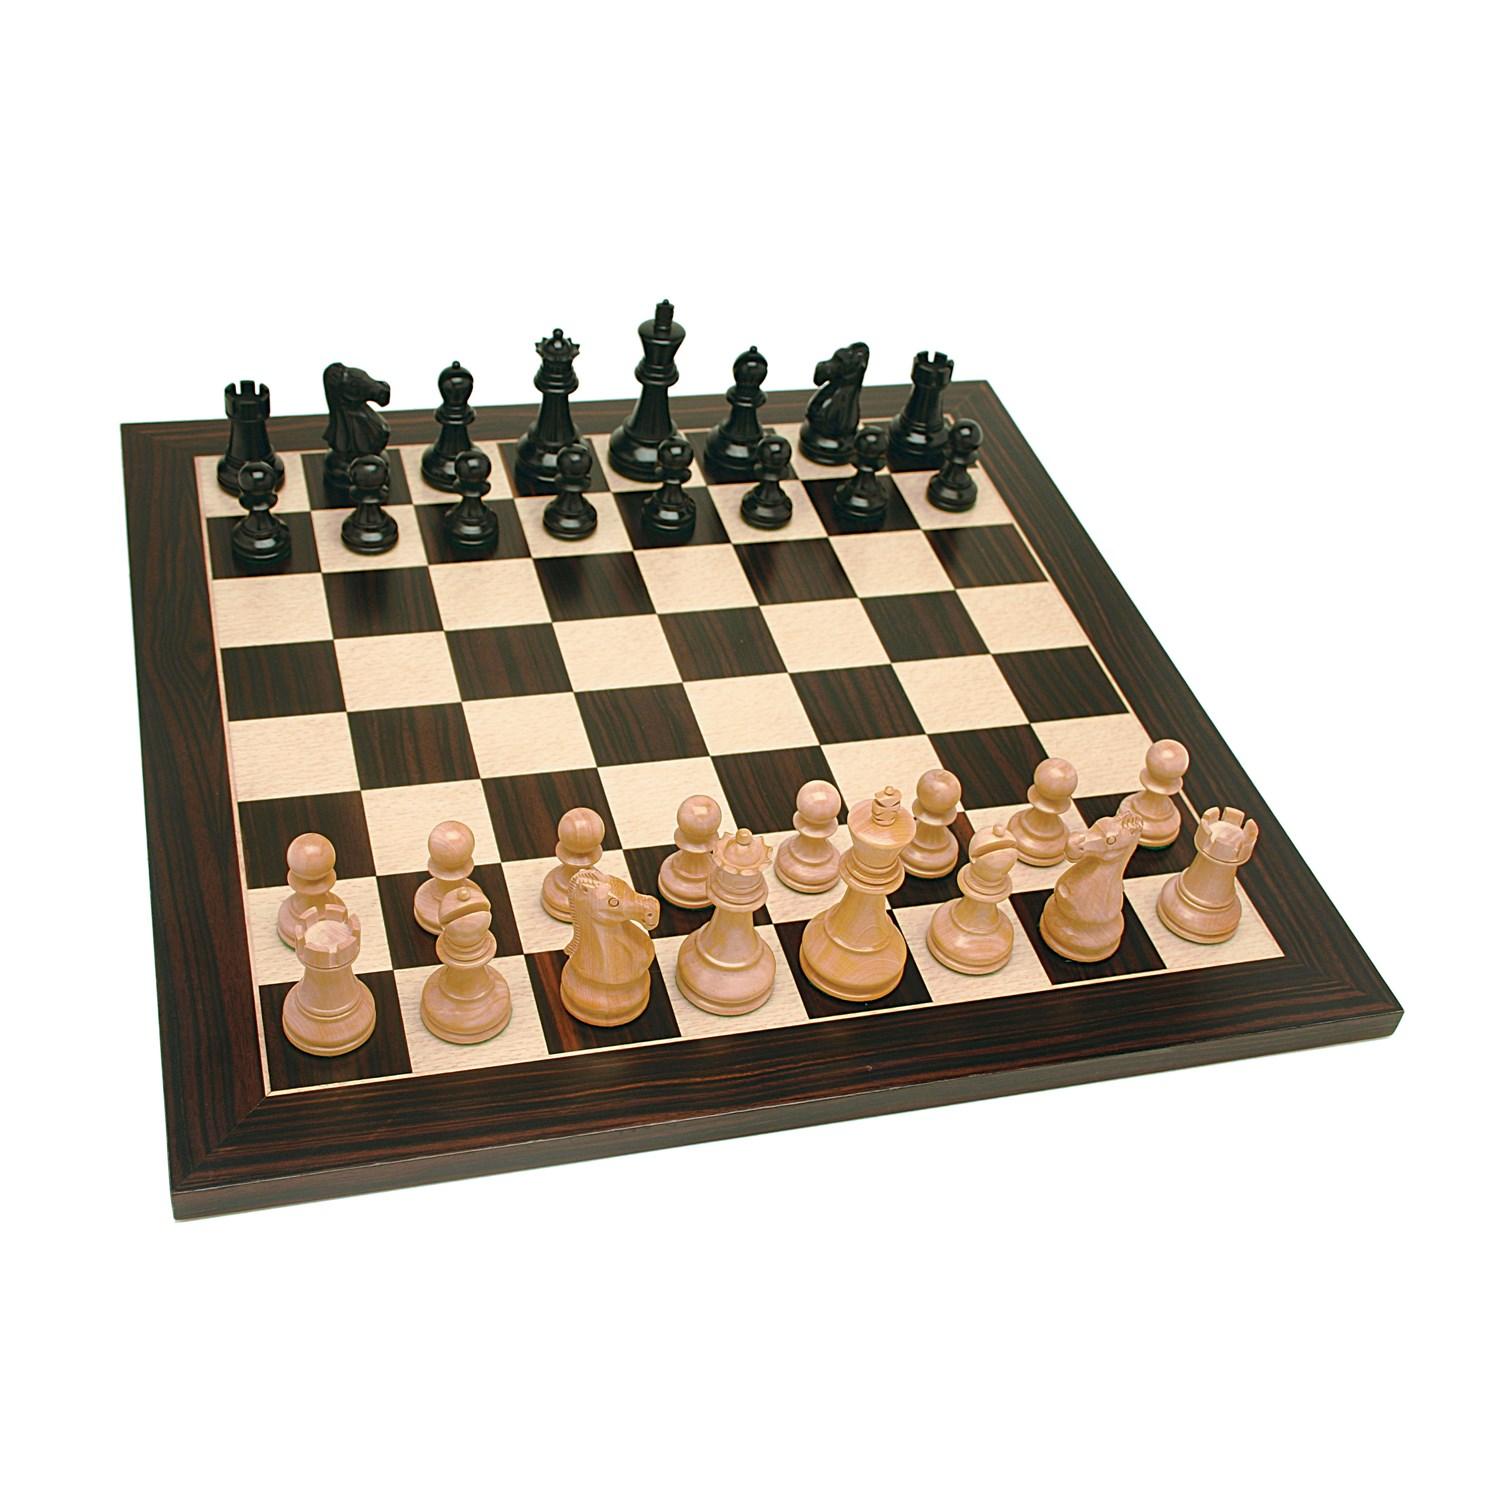 Grand Jacques Style Chess Set Weighted Pieces Black